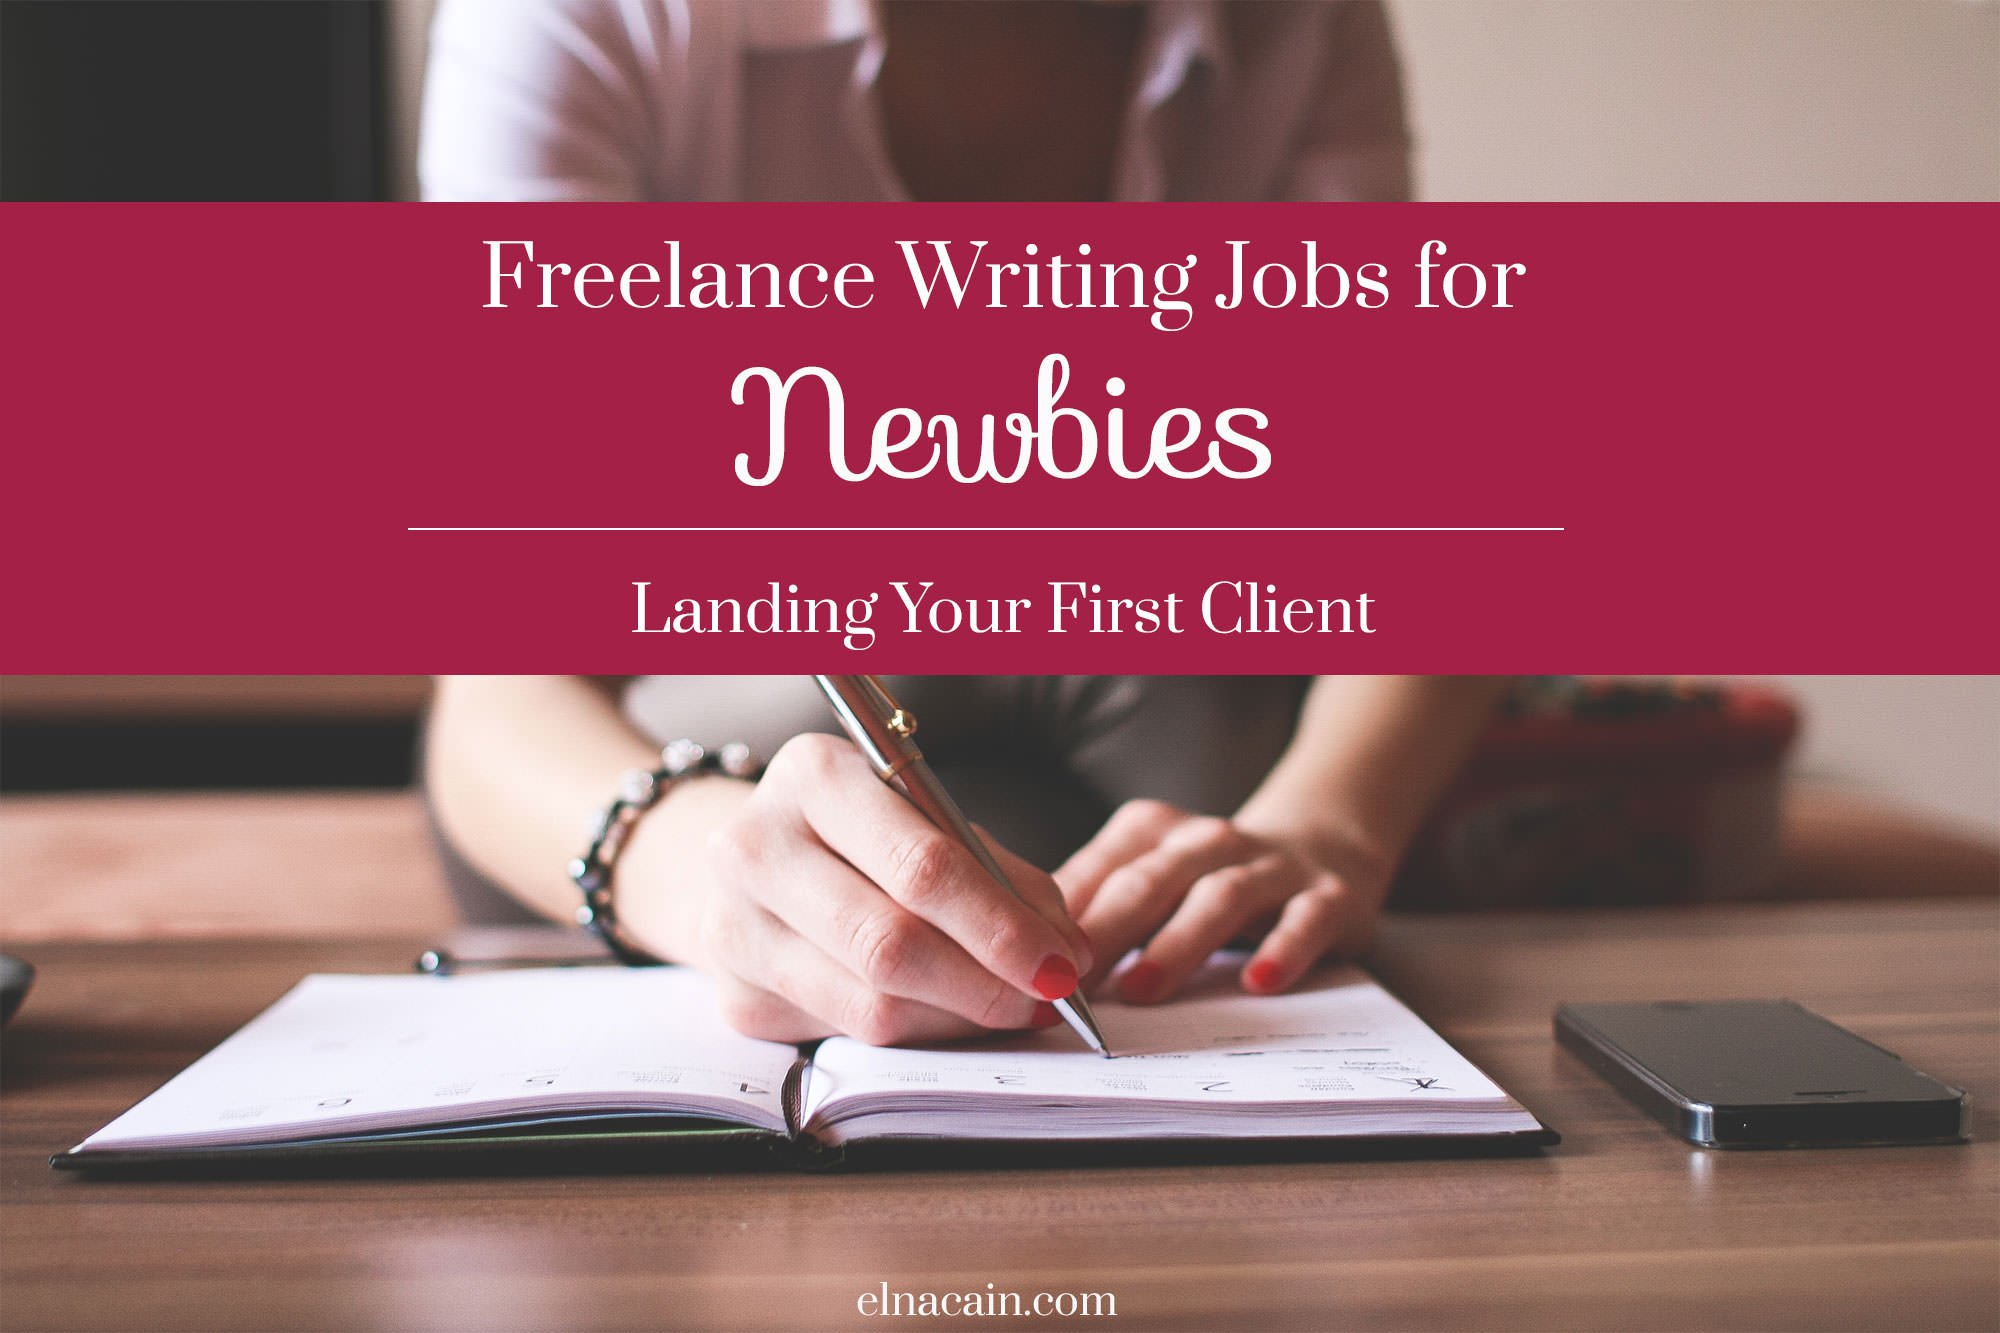 freelance writing work uk Search for jobs related to freelance writing jobs or hire on the world's largest freelancing marketplace with 13m+ jobs it's free to sign up and bid on jobs.